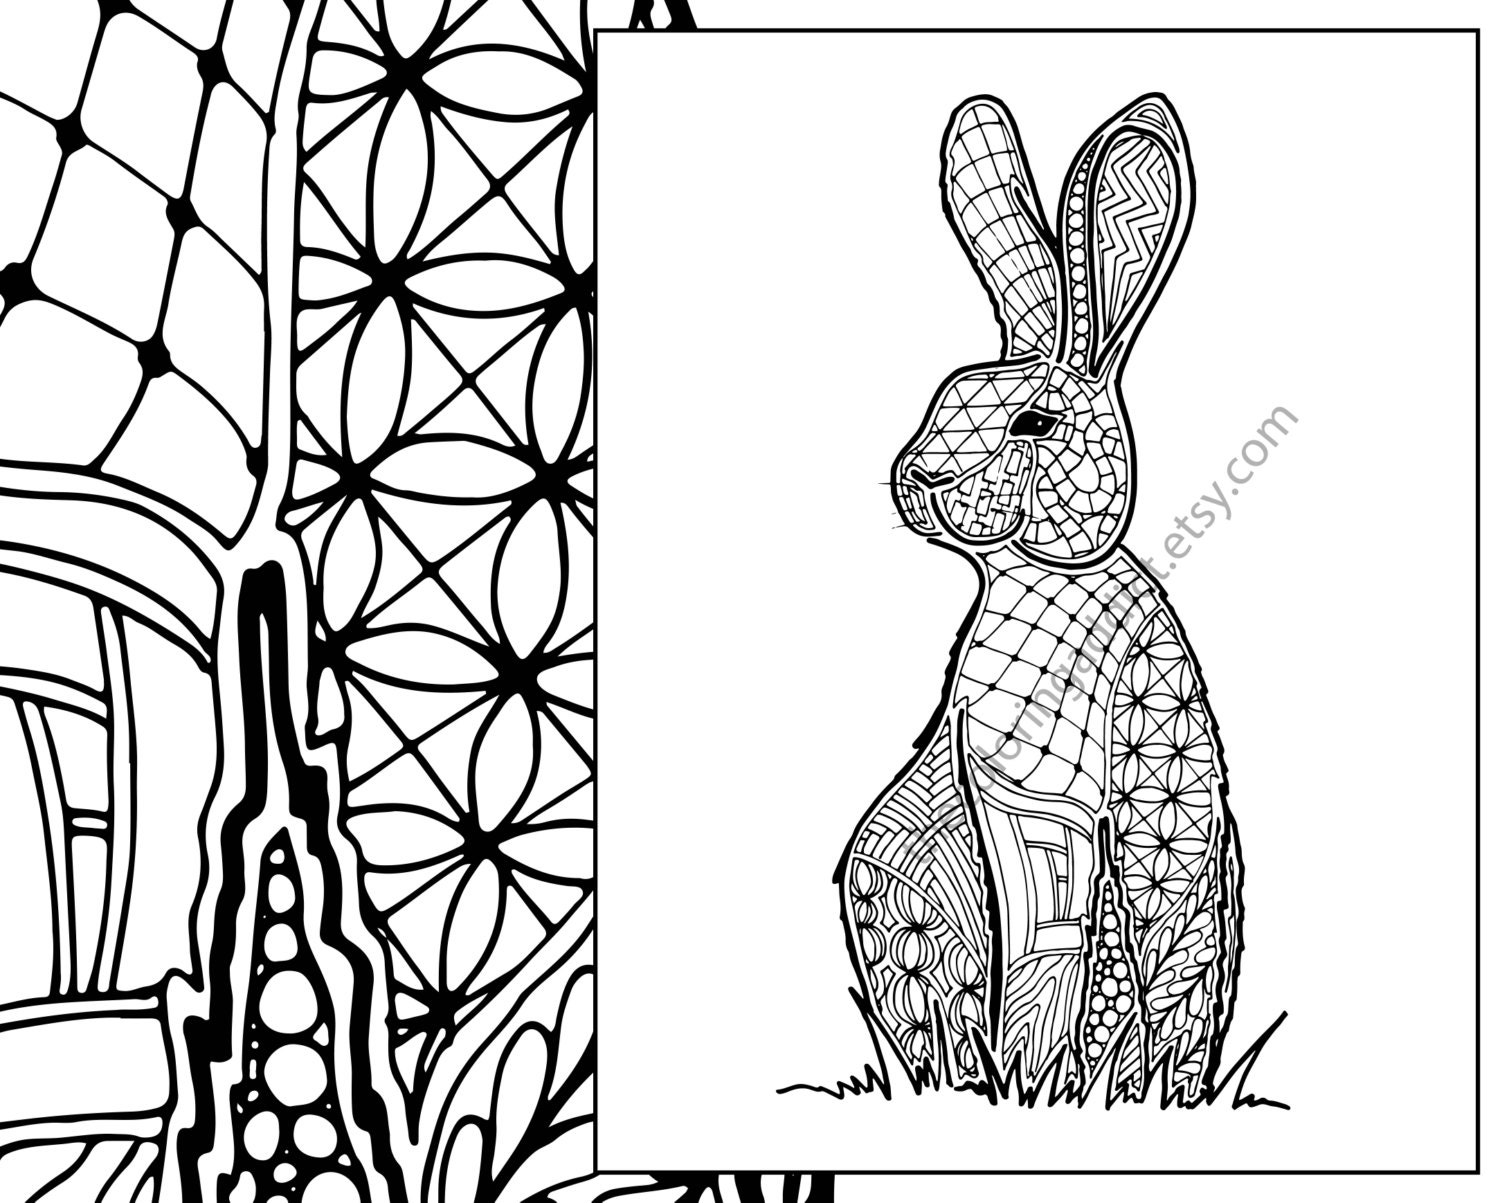 bunny rabbit coloring sheet animal coloring pdf zentangle | Etsy